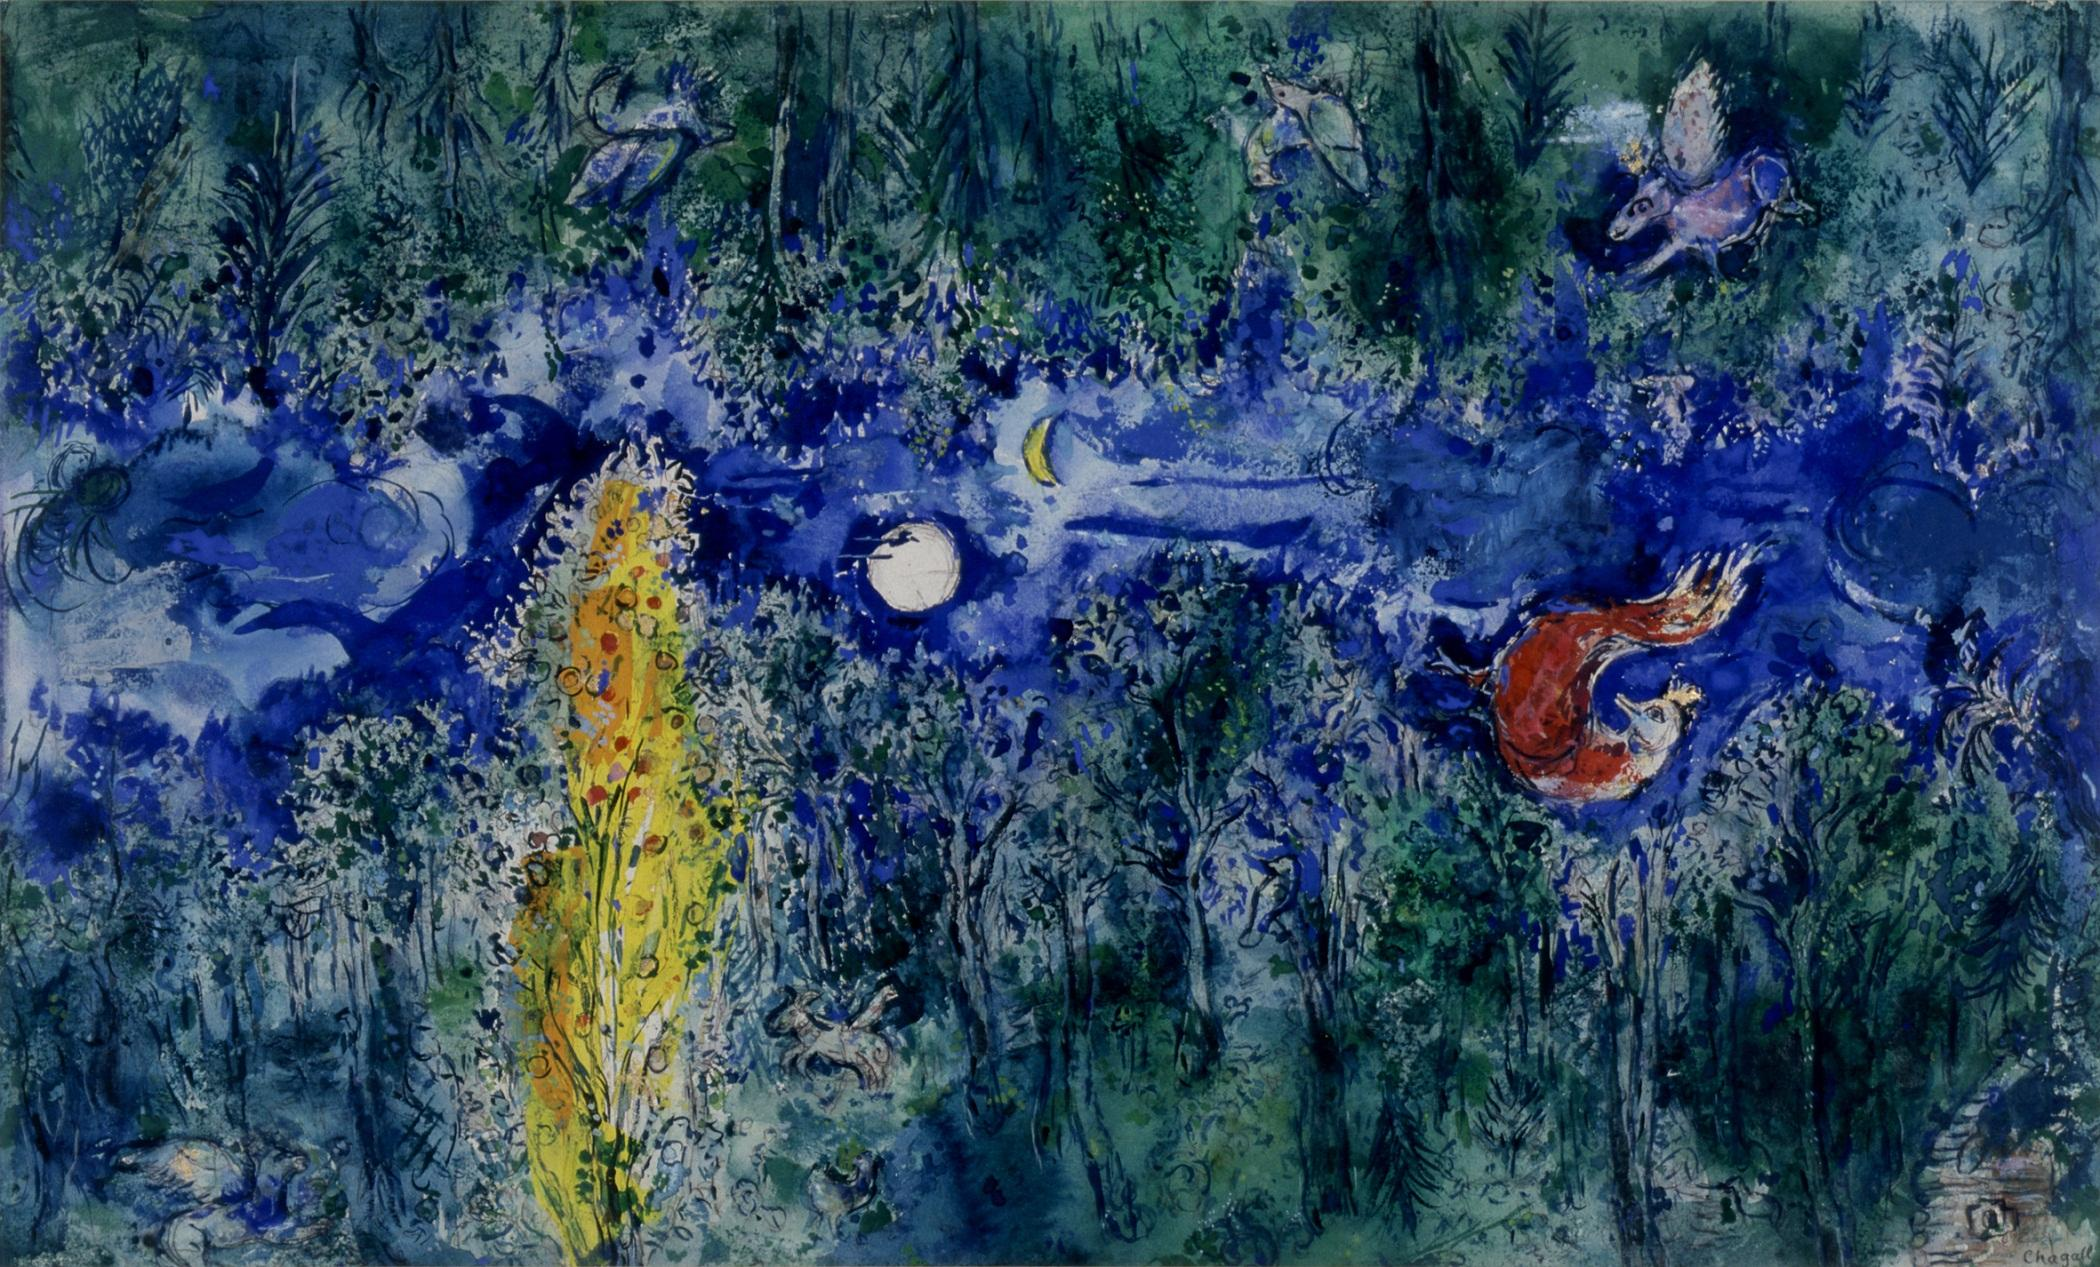 Model for the curtain in the first act of The Firebird by Stravinsky- The Enchanted Forest 1945. Marc Chagall